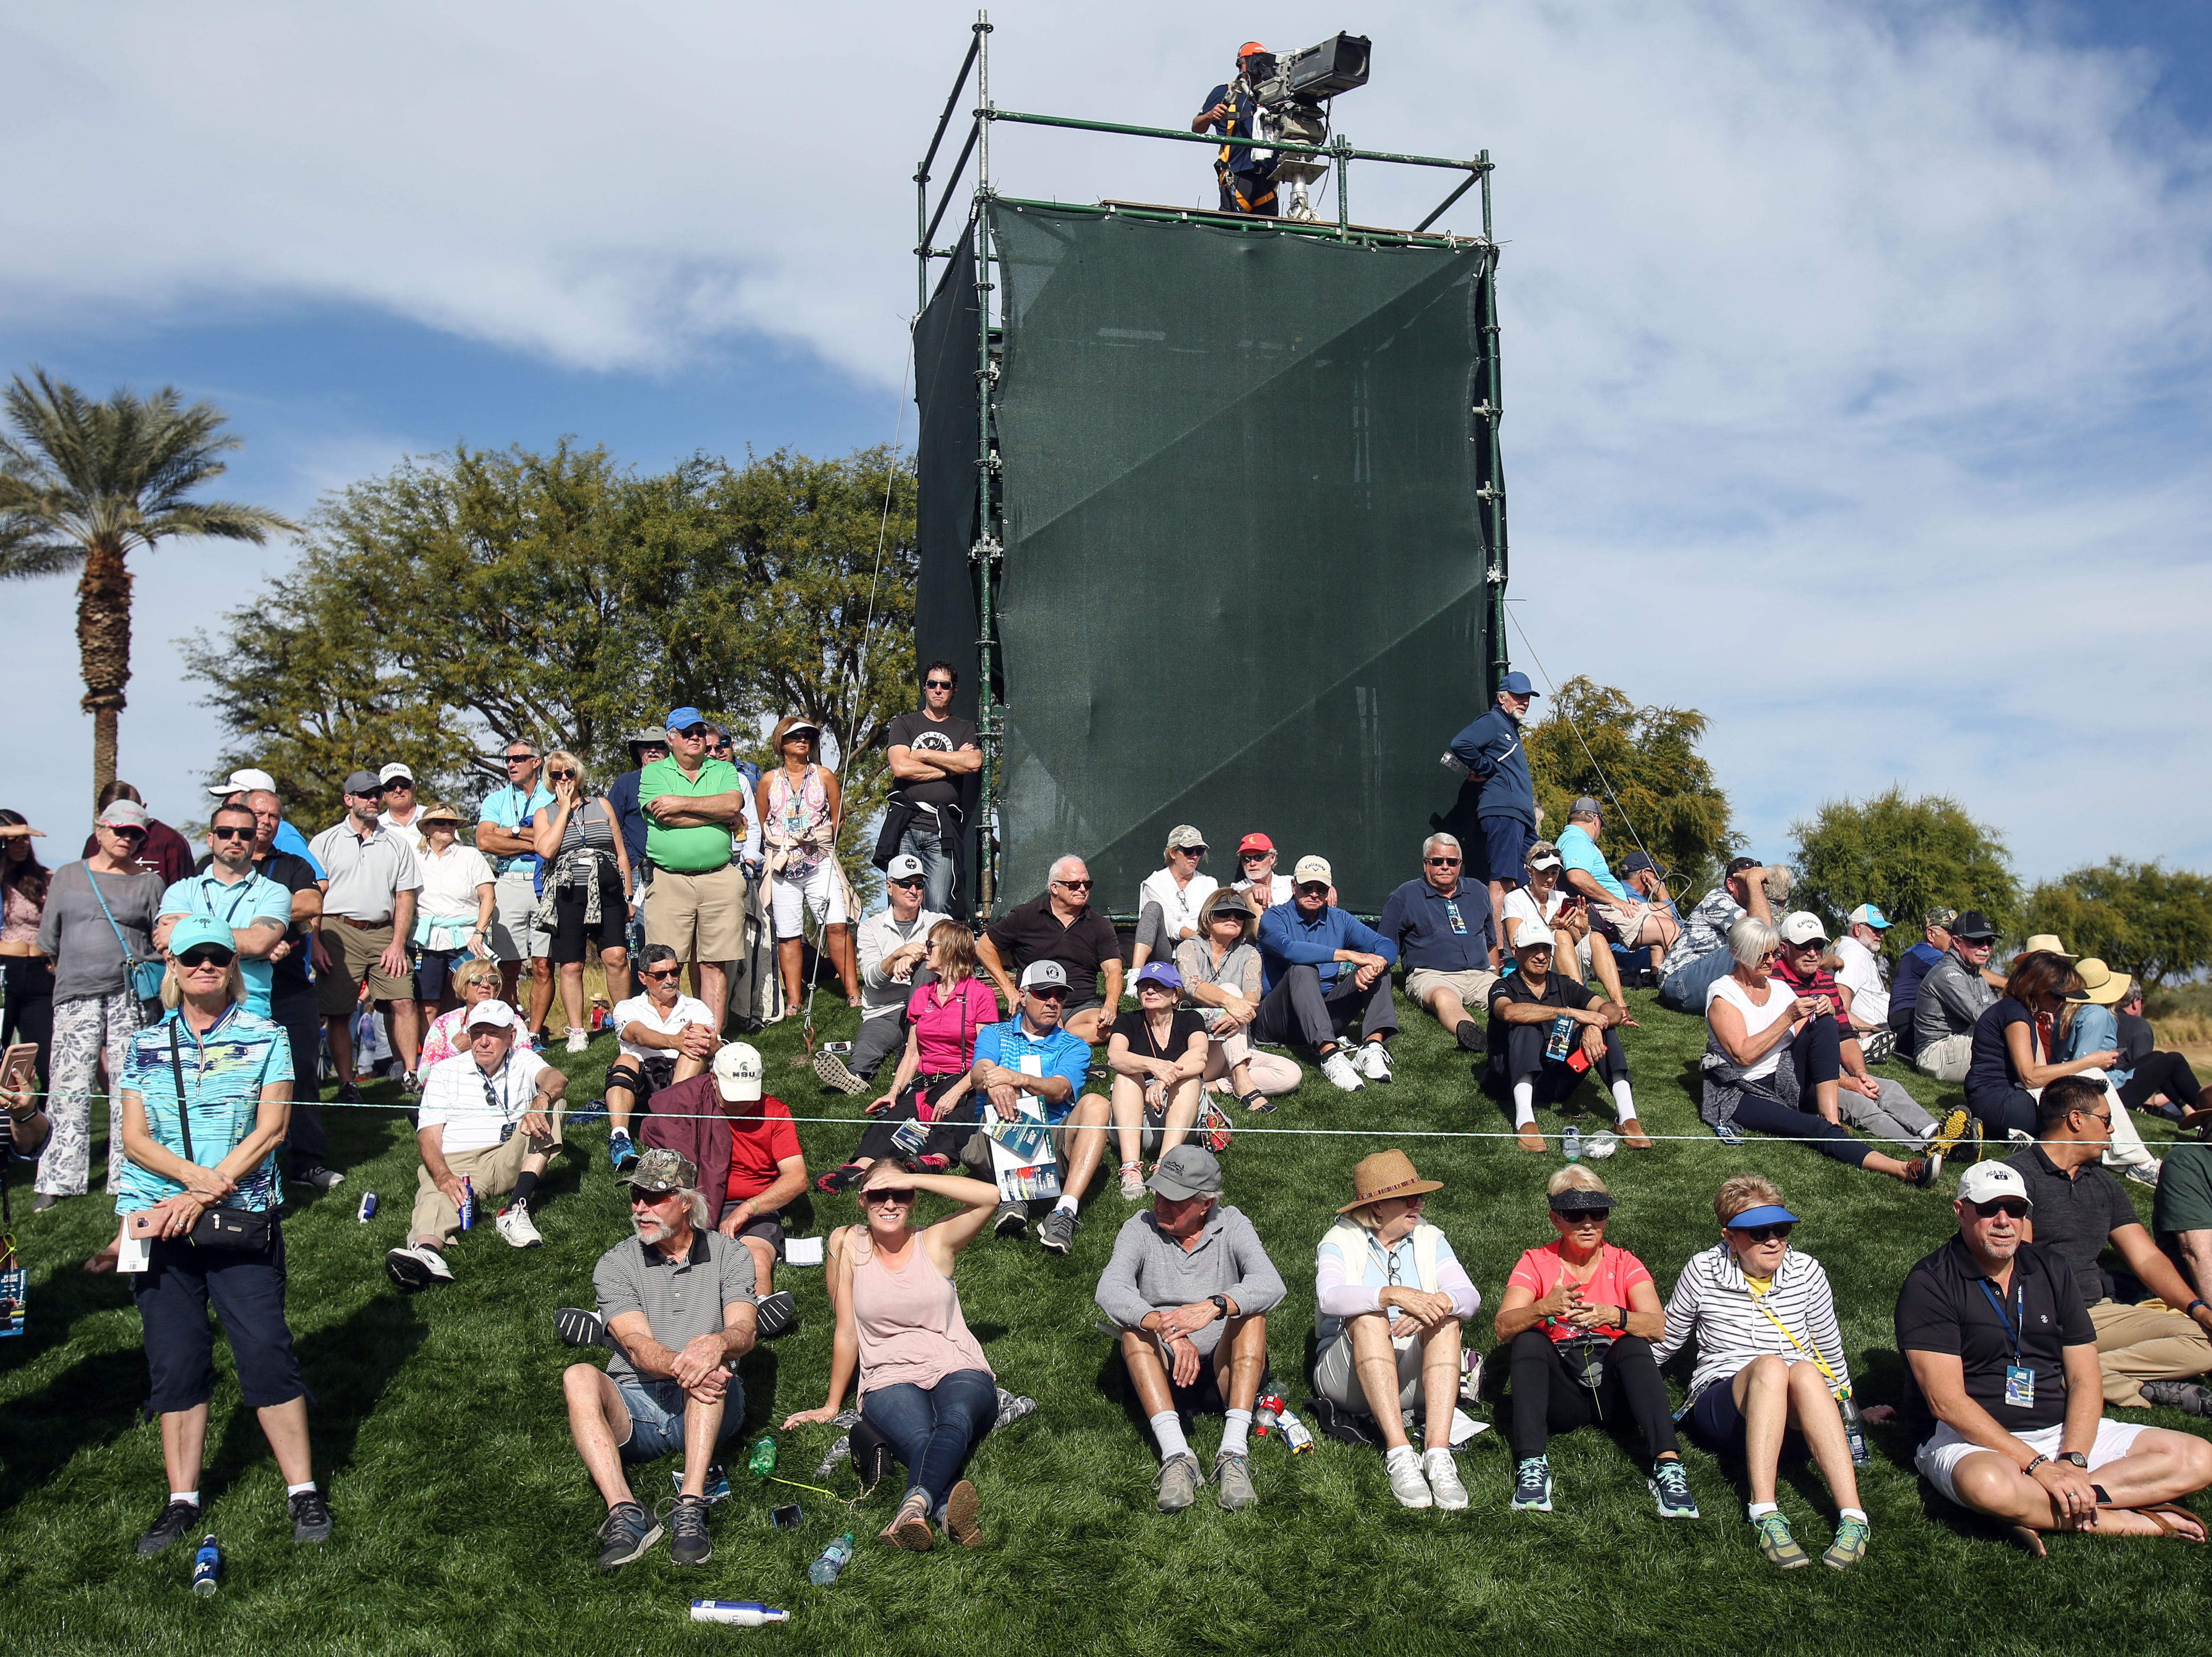 Spectators watch for Phil Mickelson on the Nicklaus Tournament Course at PGA West in La Quinta during the 2nd round of the Desert Classic on Friday, January 18, 2019.